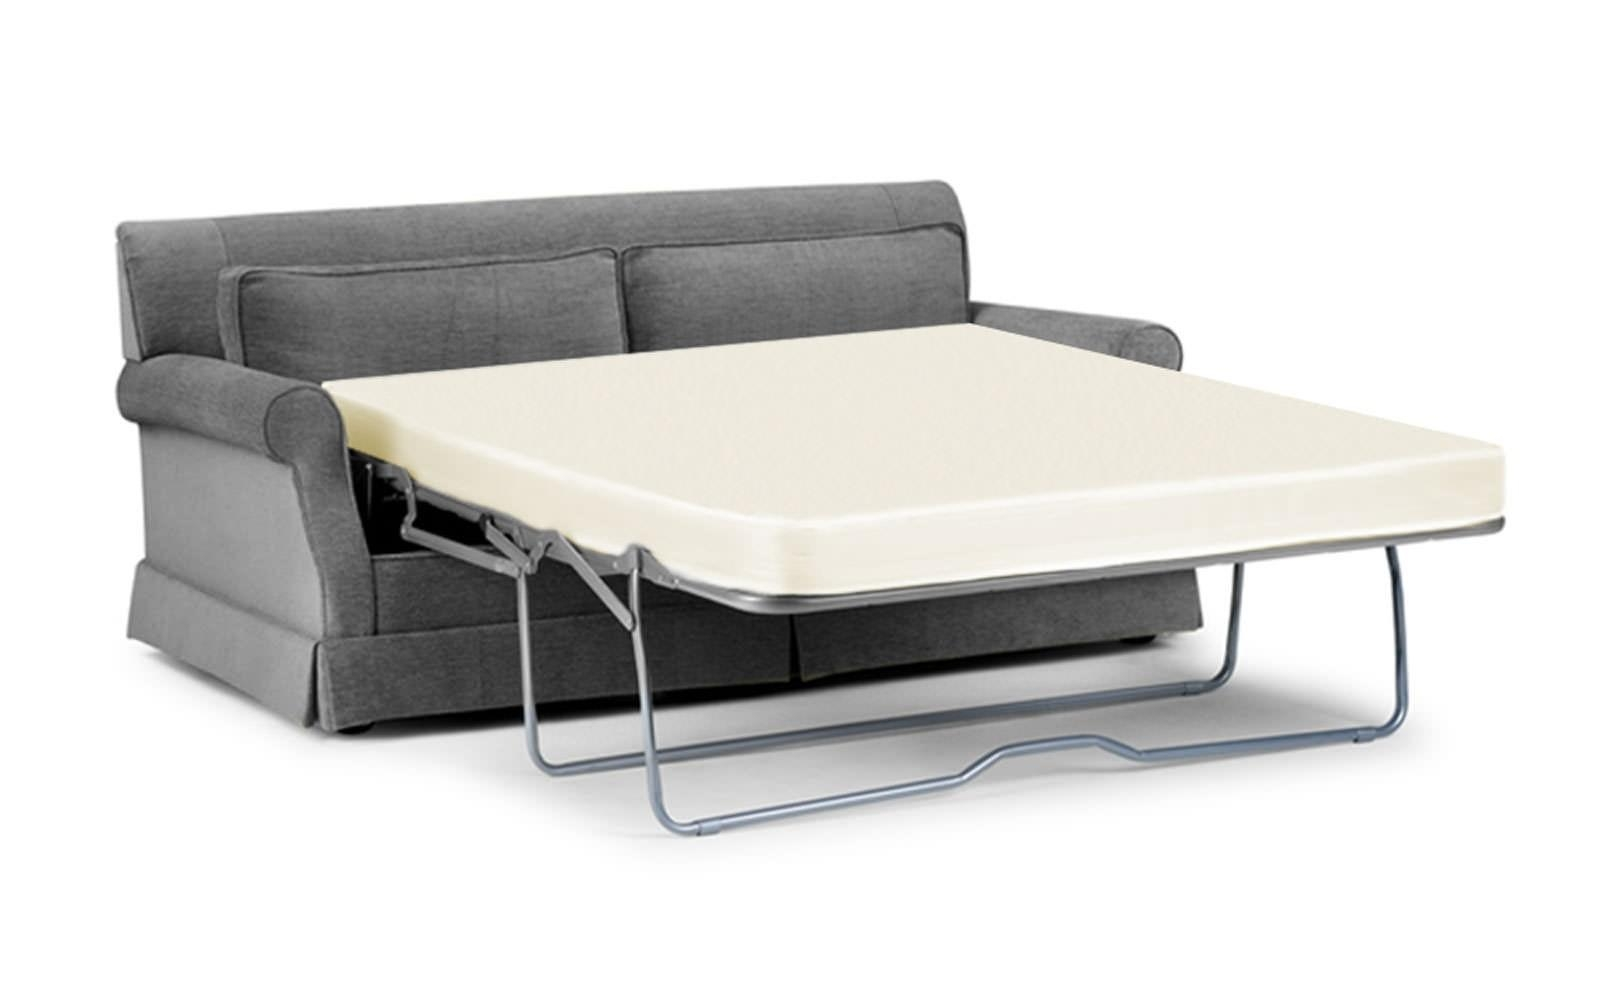 Sleeper Sofa Memory Foam Mattress & Replacement In Sofa Beds With Mattress Support (View 3 of 20)